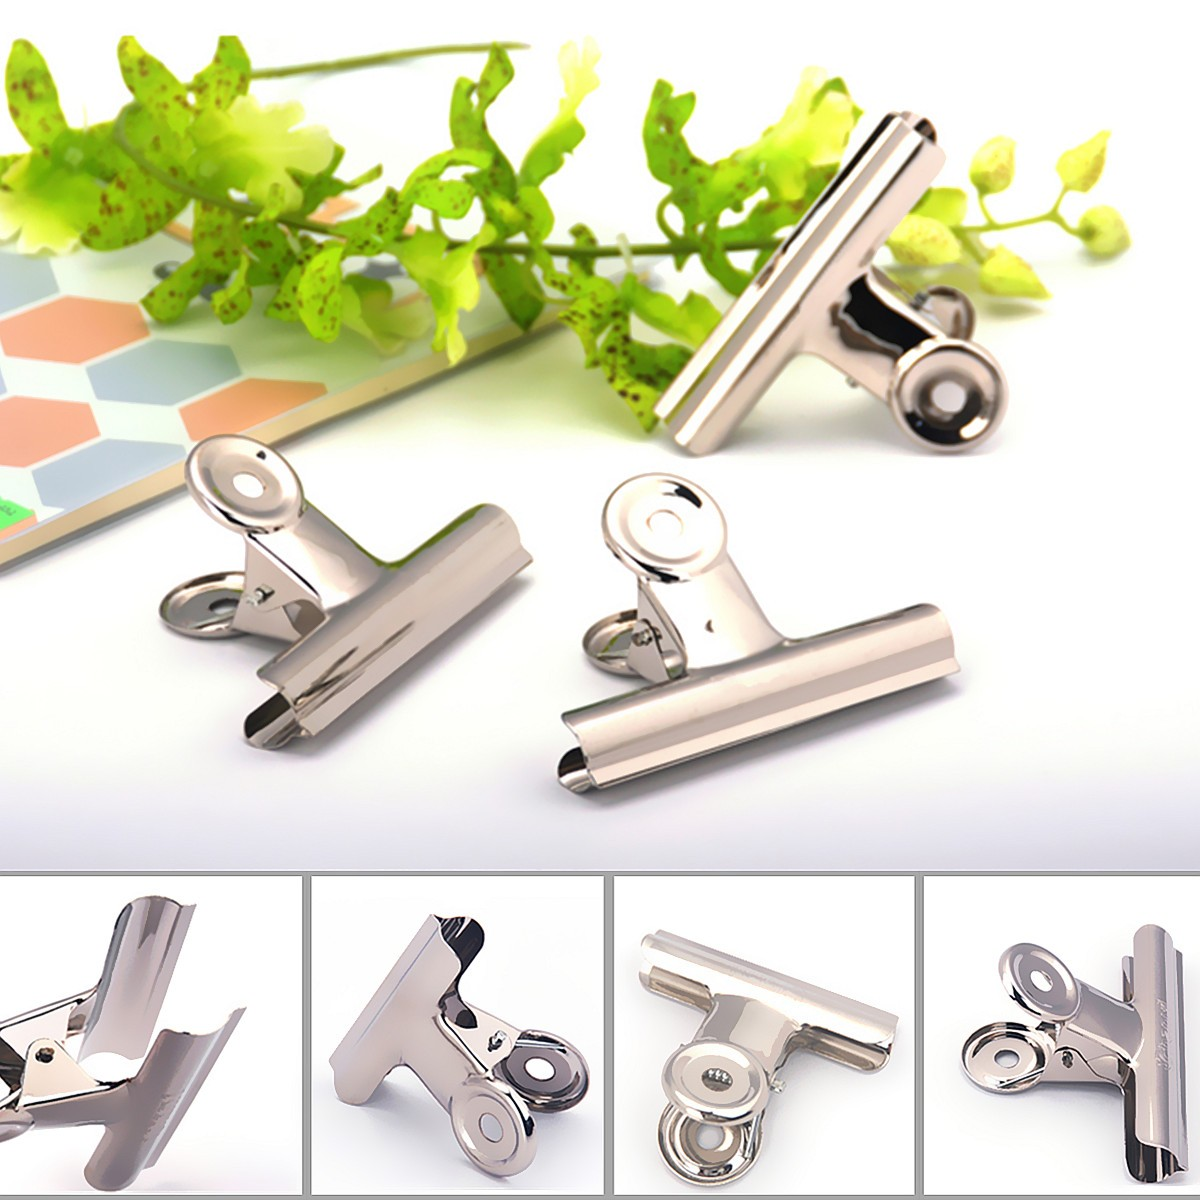 10pcs 31mm Stainless Steel Silver Bulldog Clips Money Letter Paper File Clamps (Eachine1) Cambridge для всех